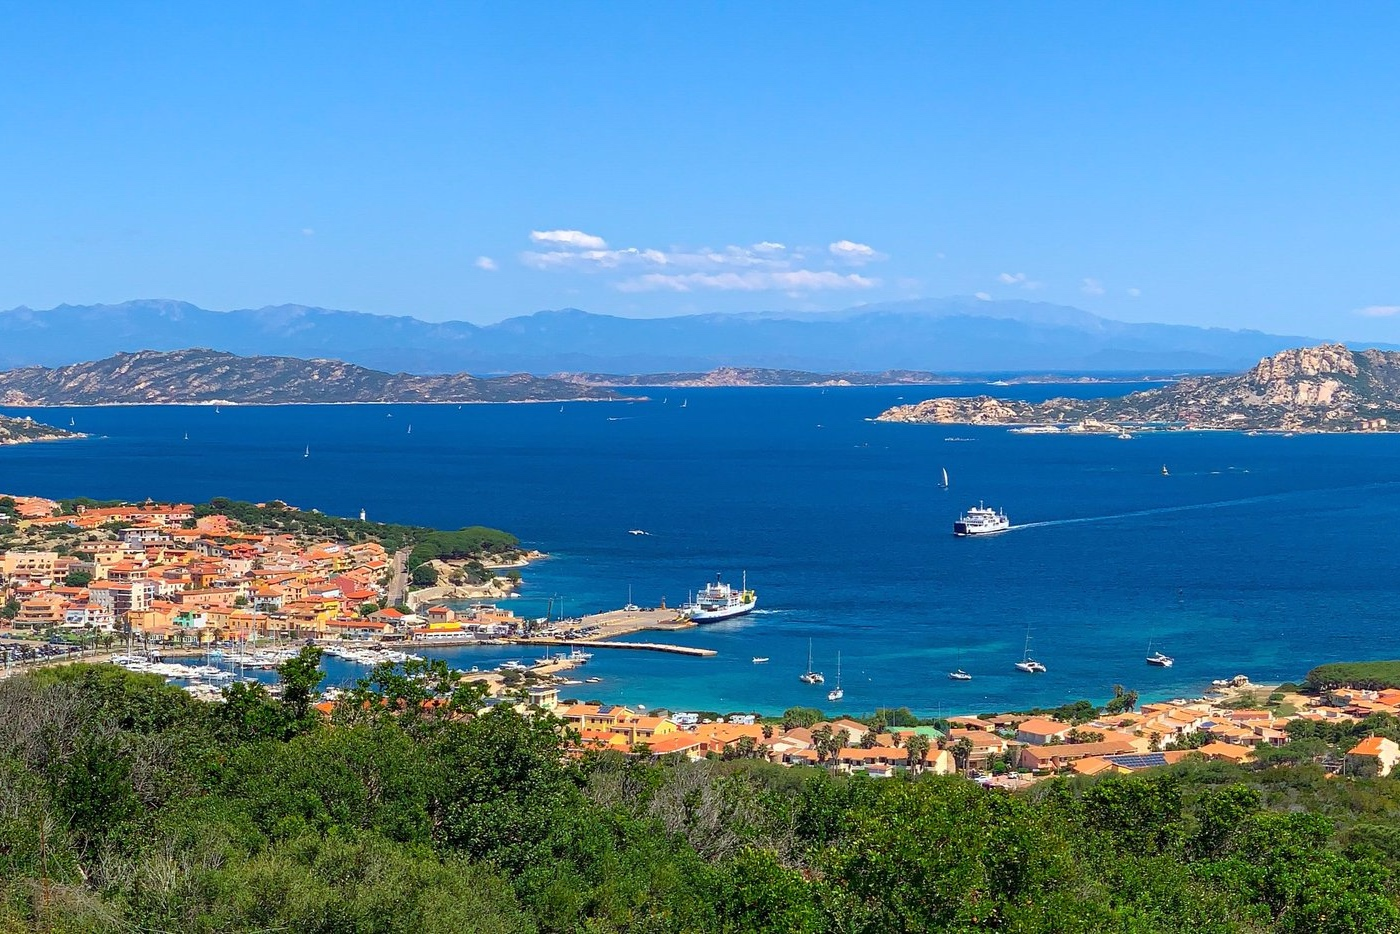 Port town and ferries to nearby Maddalena island